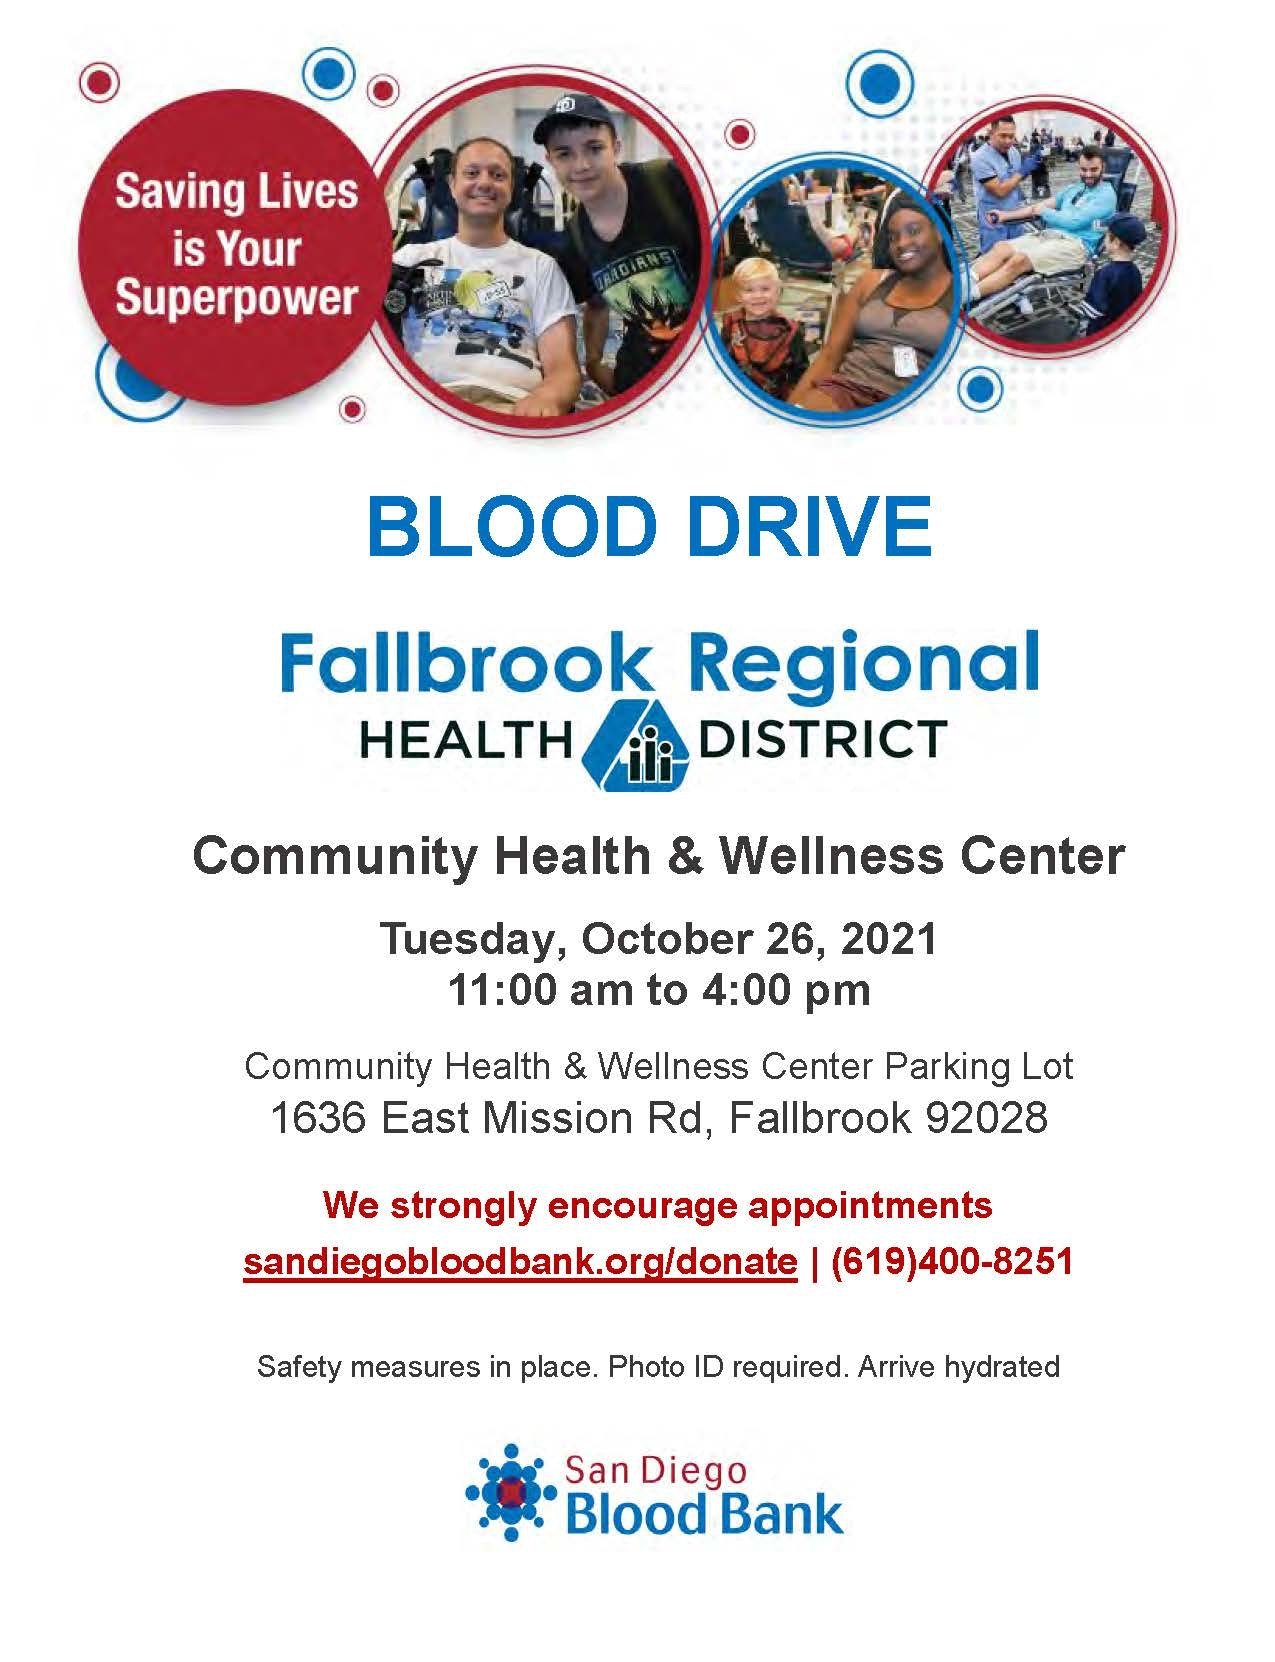 Image of Blood Drive flyer